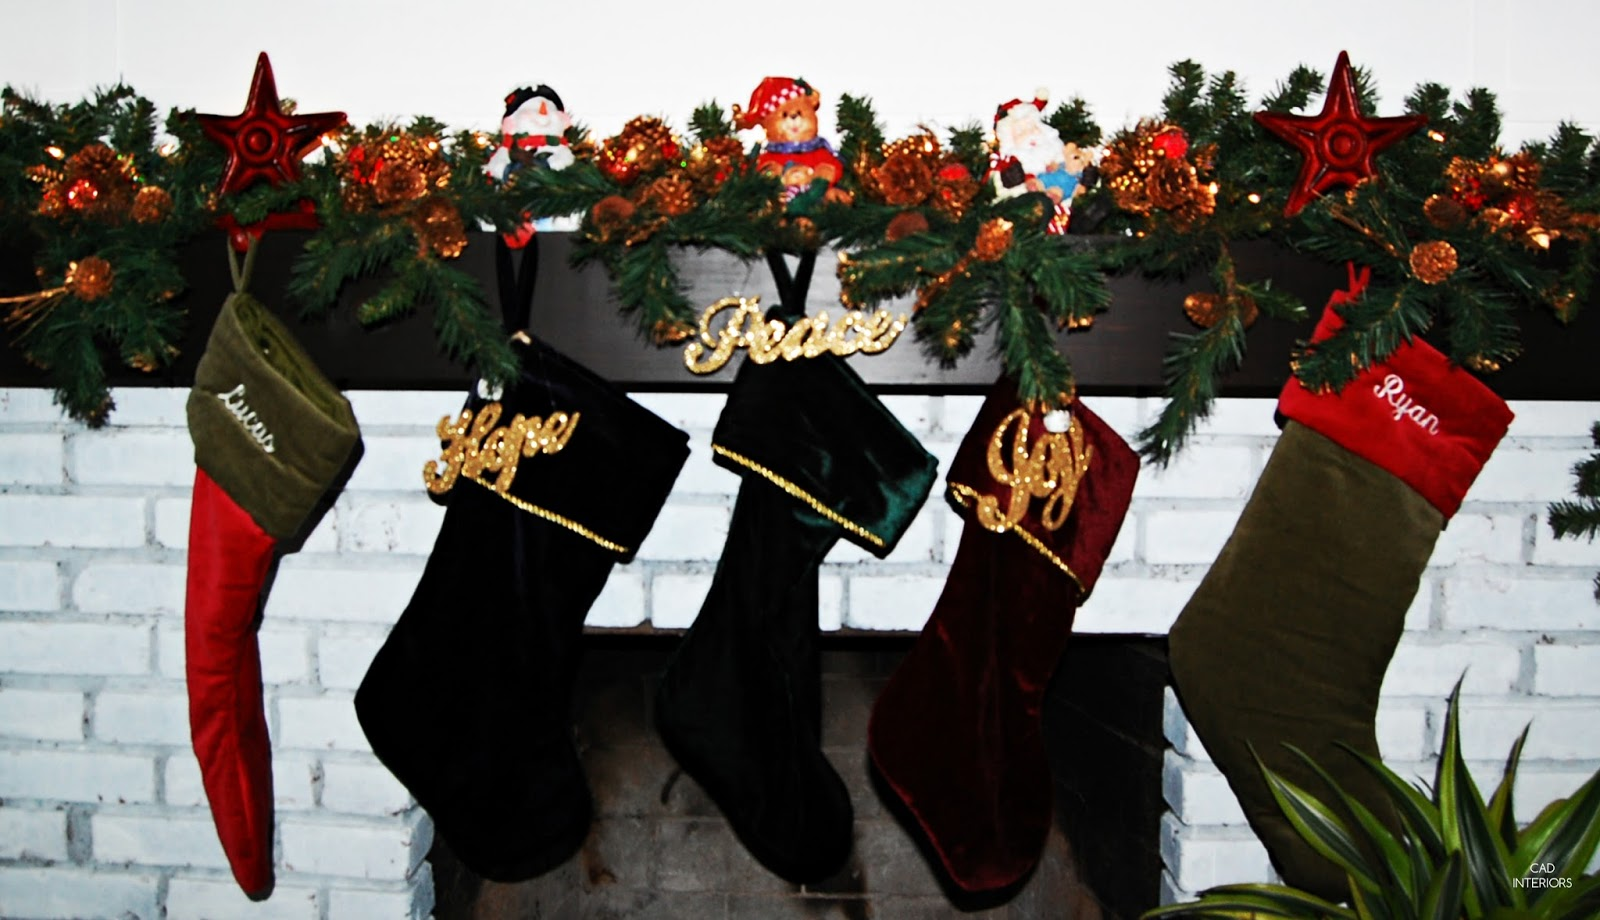 traditional classic Christmas decorations Pottery Barn stockings